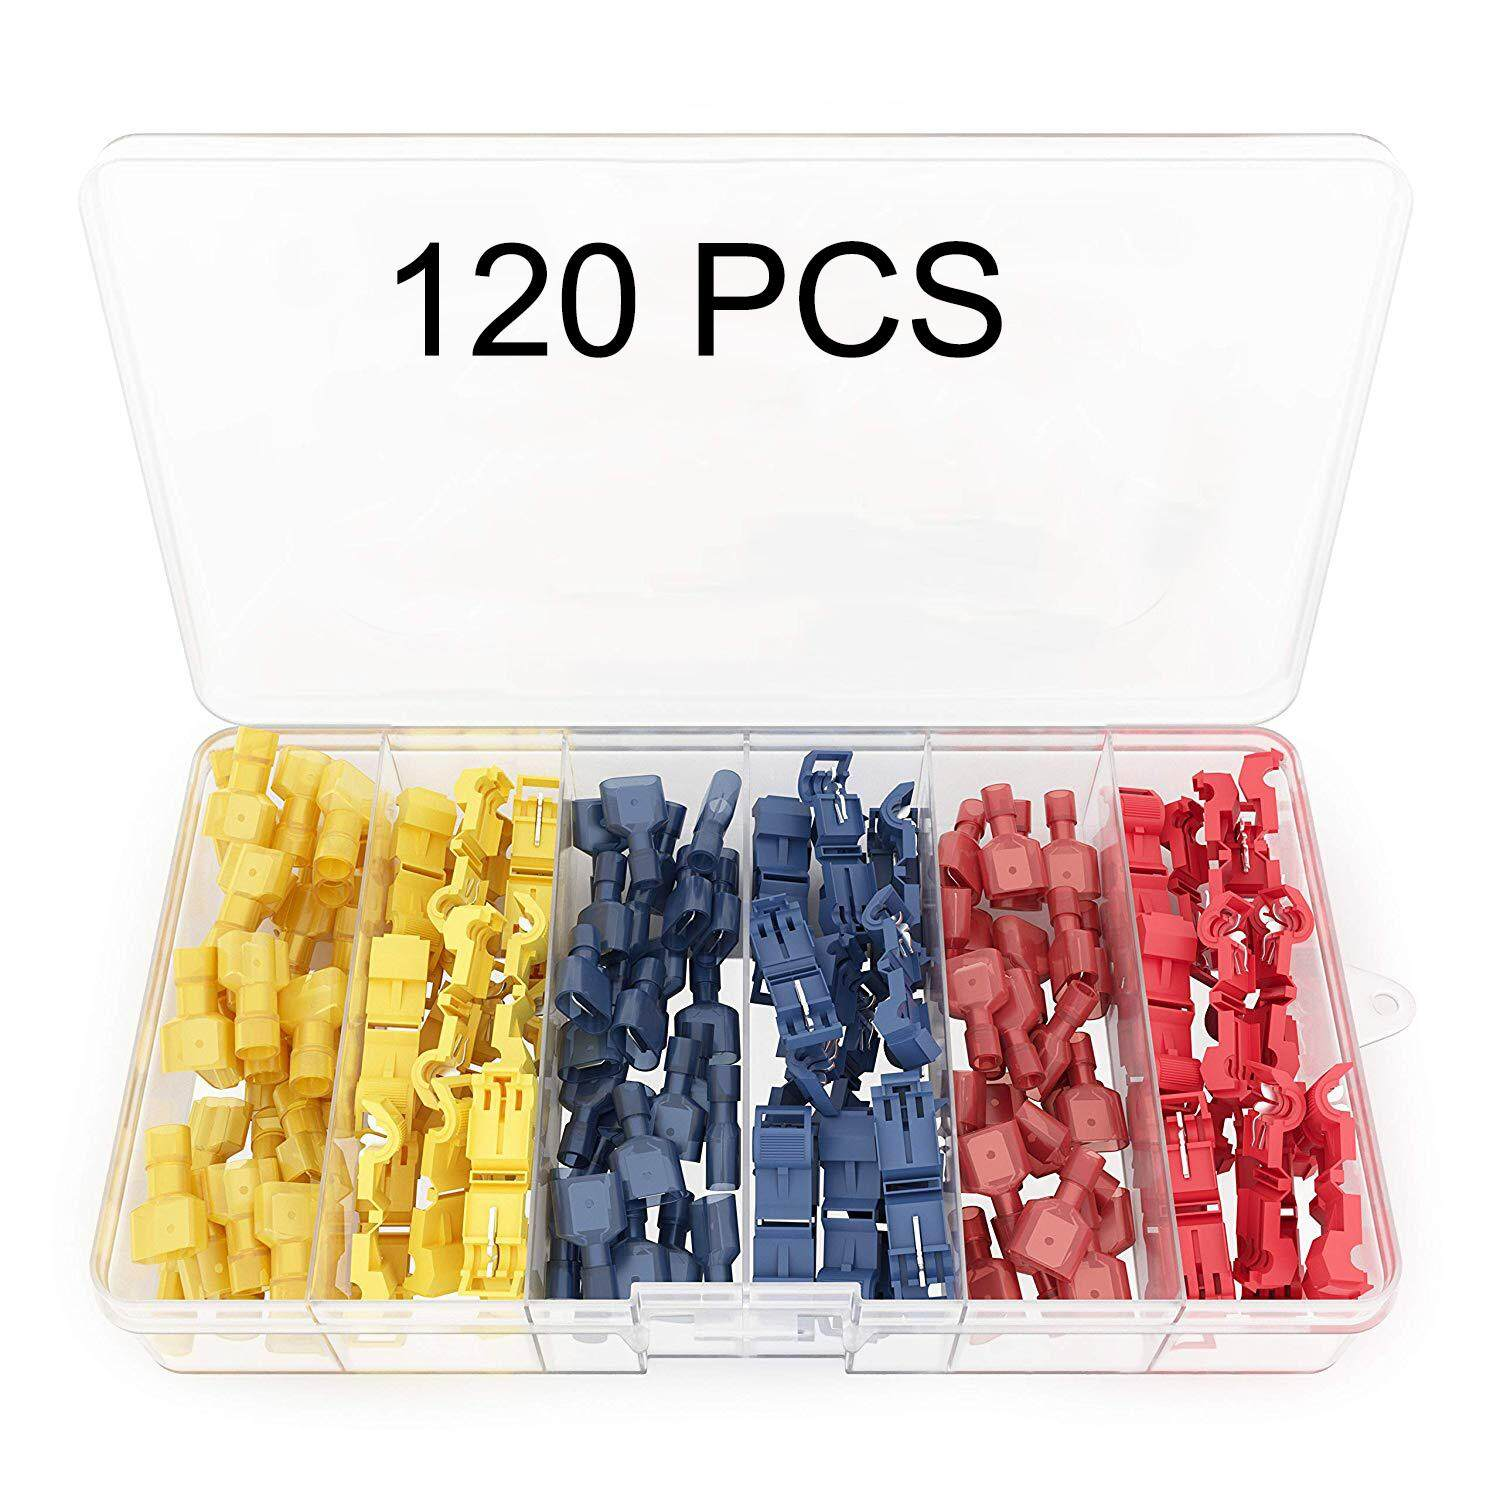 ✅【120PCS】T Tap Electrical Connectors – Quick Wire Splice Taps and Insulated Male Quick Disconnect Terminals - By Convinent Store